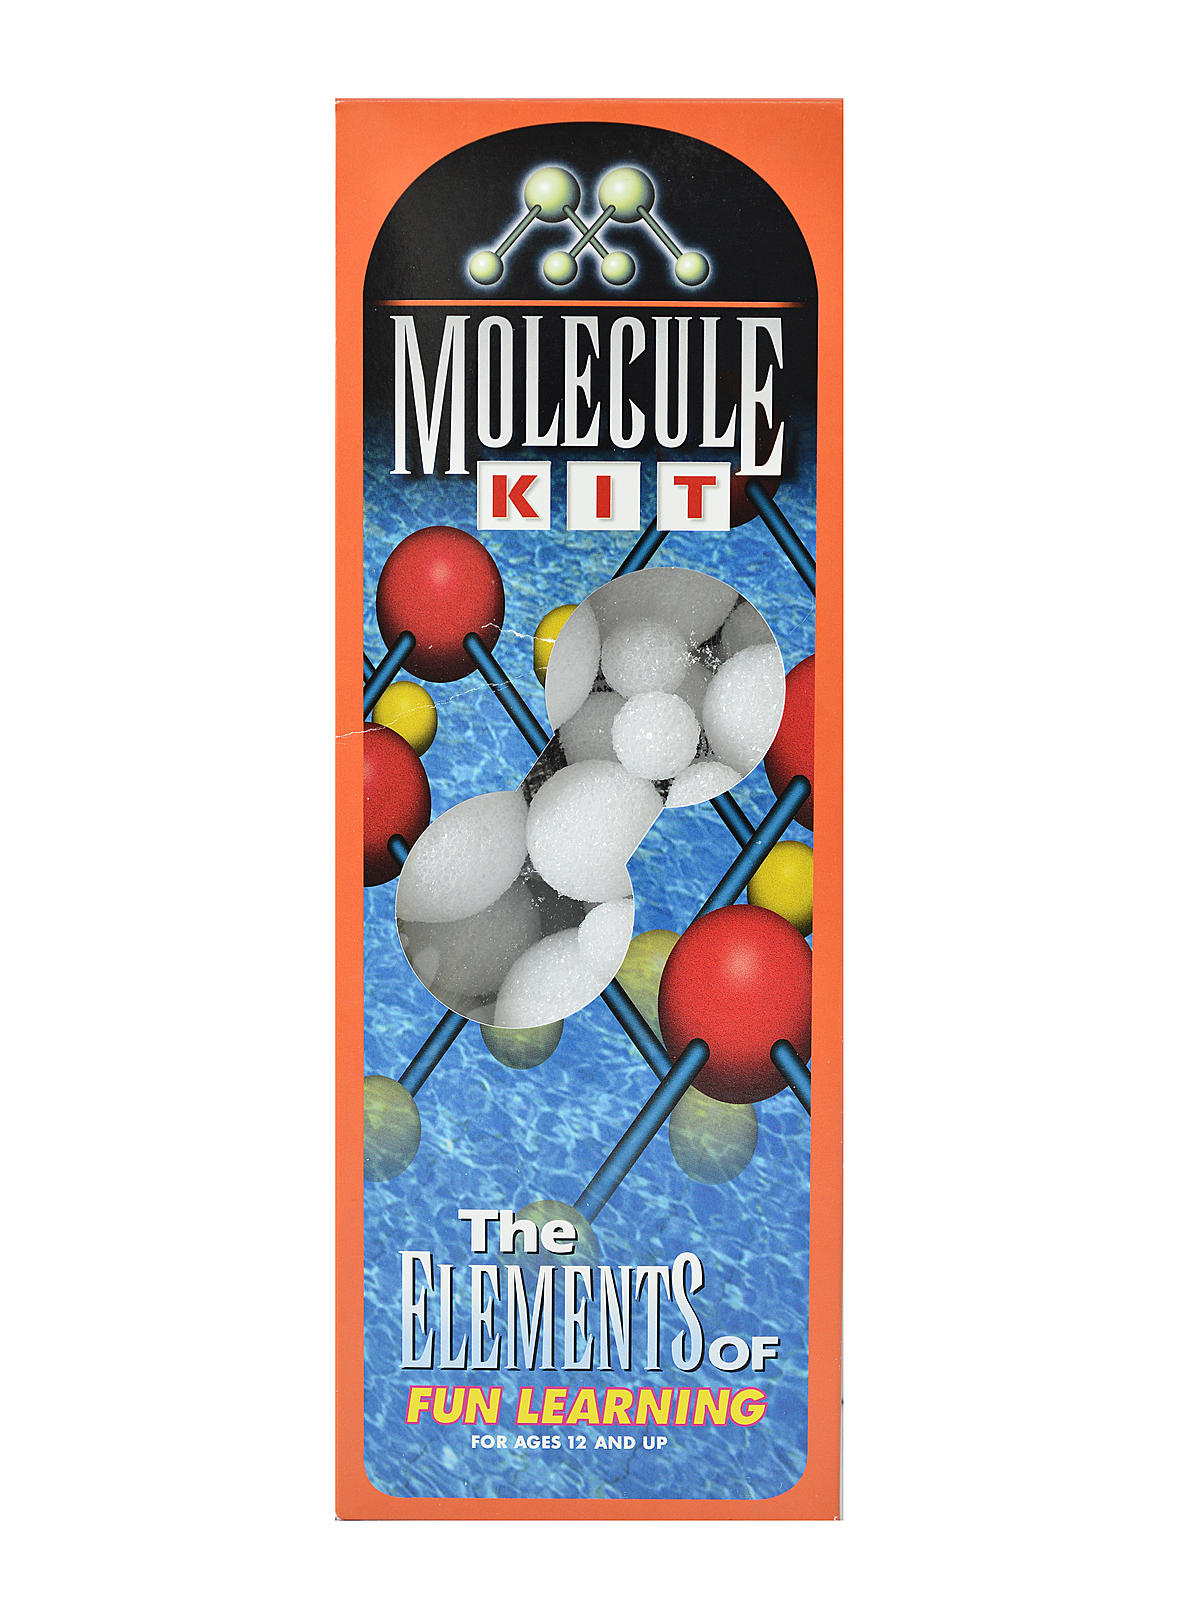 Fun Learning Molecule Kit